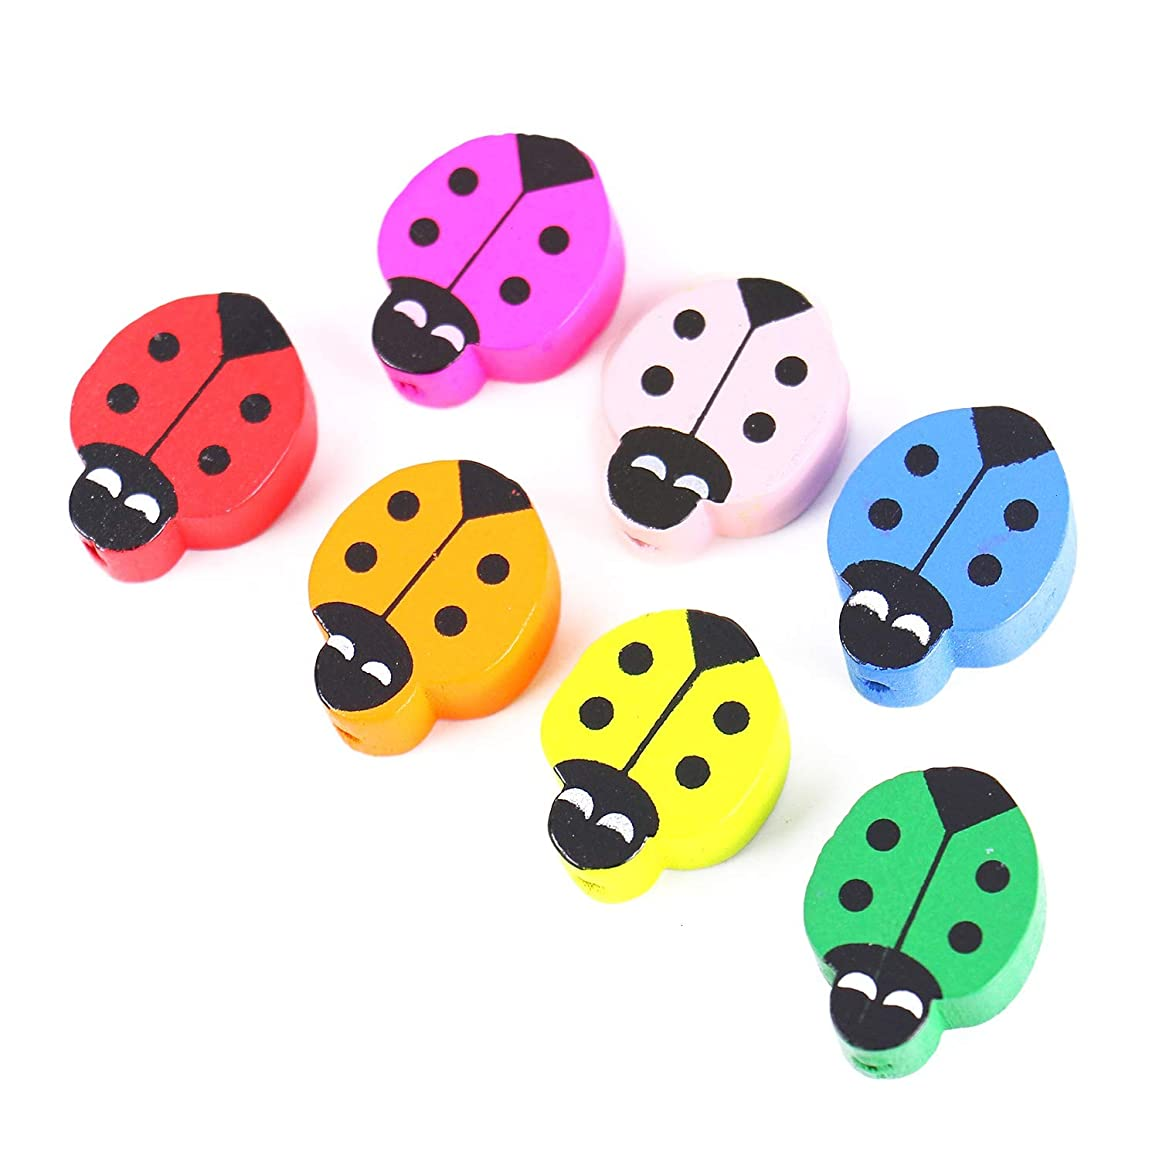 Monrocco 60PC Mix Color Wooden Ladybug Beads Cute Animal Beads Spacer Beads Loose Beads for DIY Jewelry Making